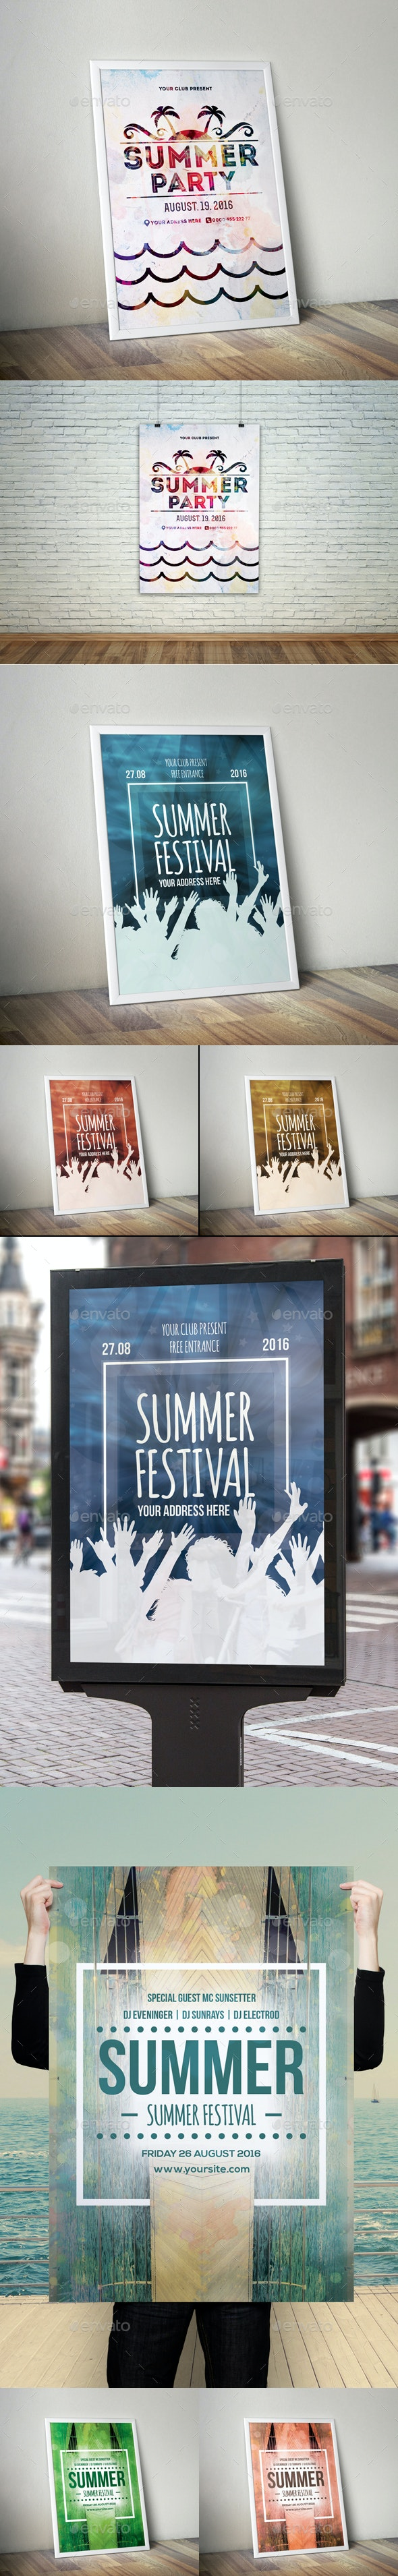 Summer Flyer Poster Bundle - Clubs & Parties Events